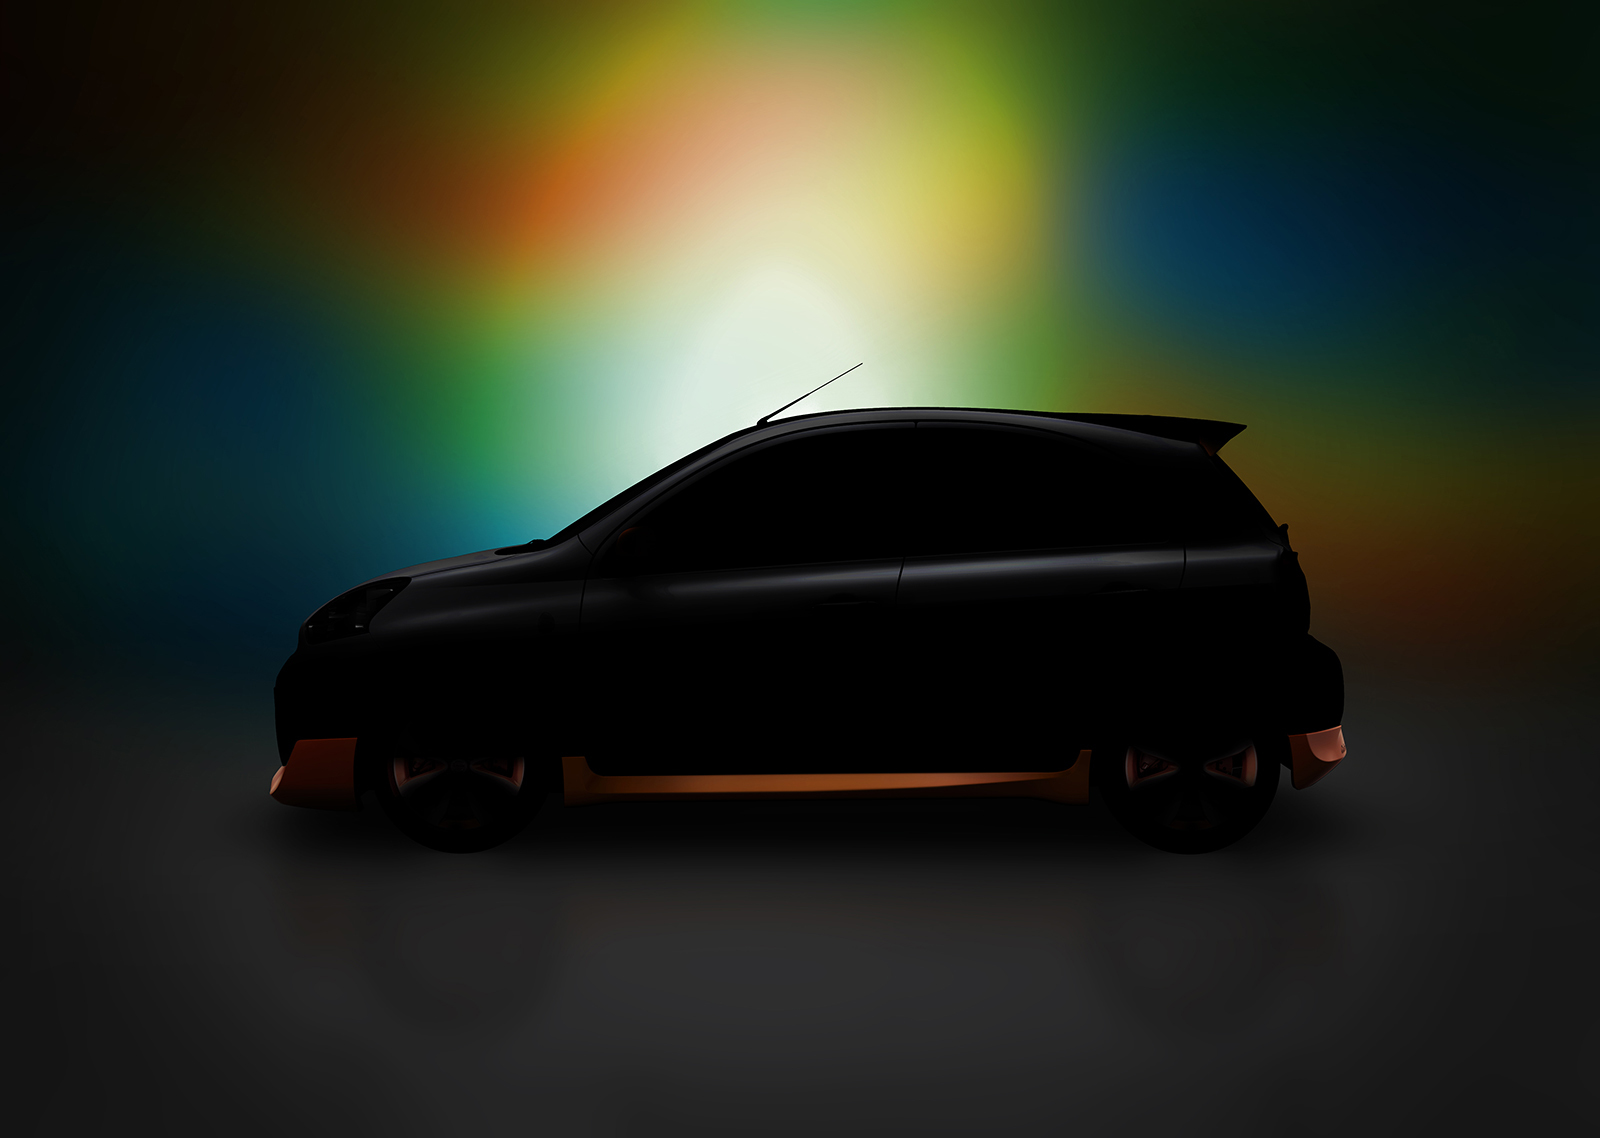 Nissan extrem ii concept teased before san paolo debut japanese 2014 extrem ii concept profile vanachro Gallery